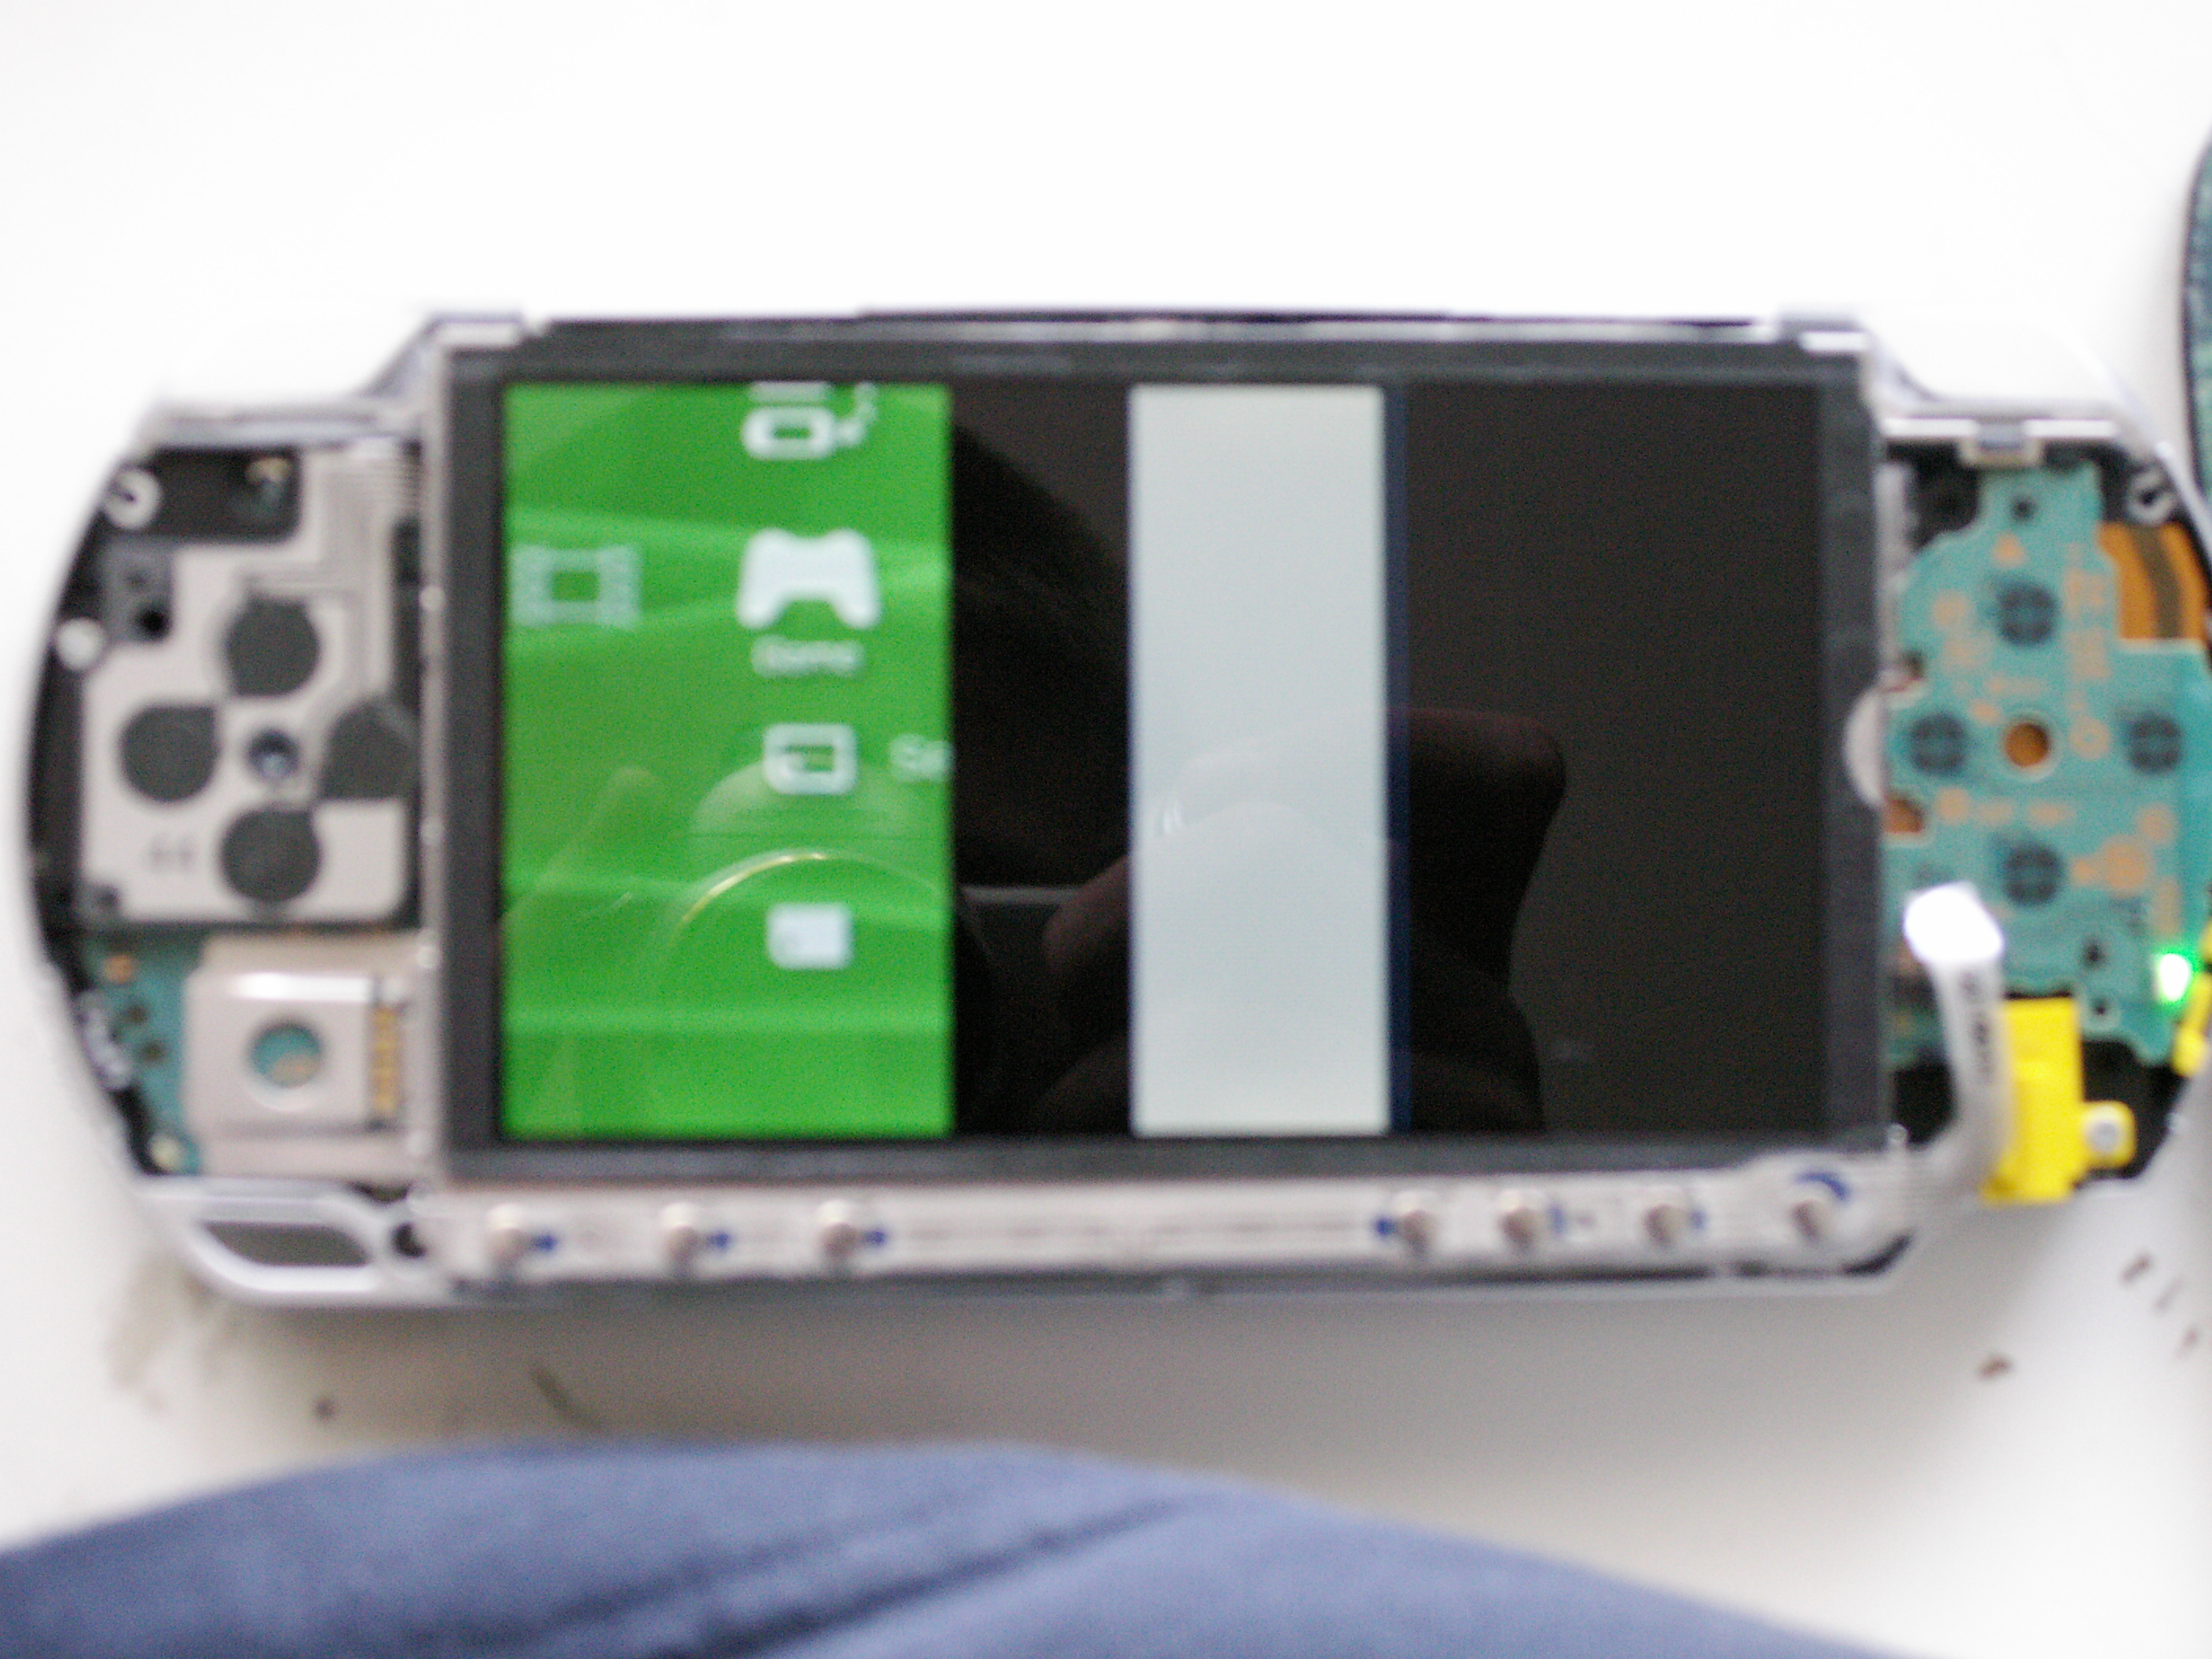 Replacing PSP 1000 Screen